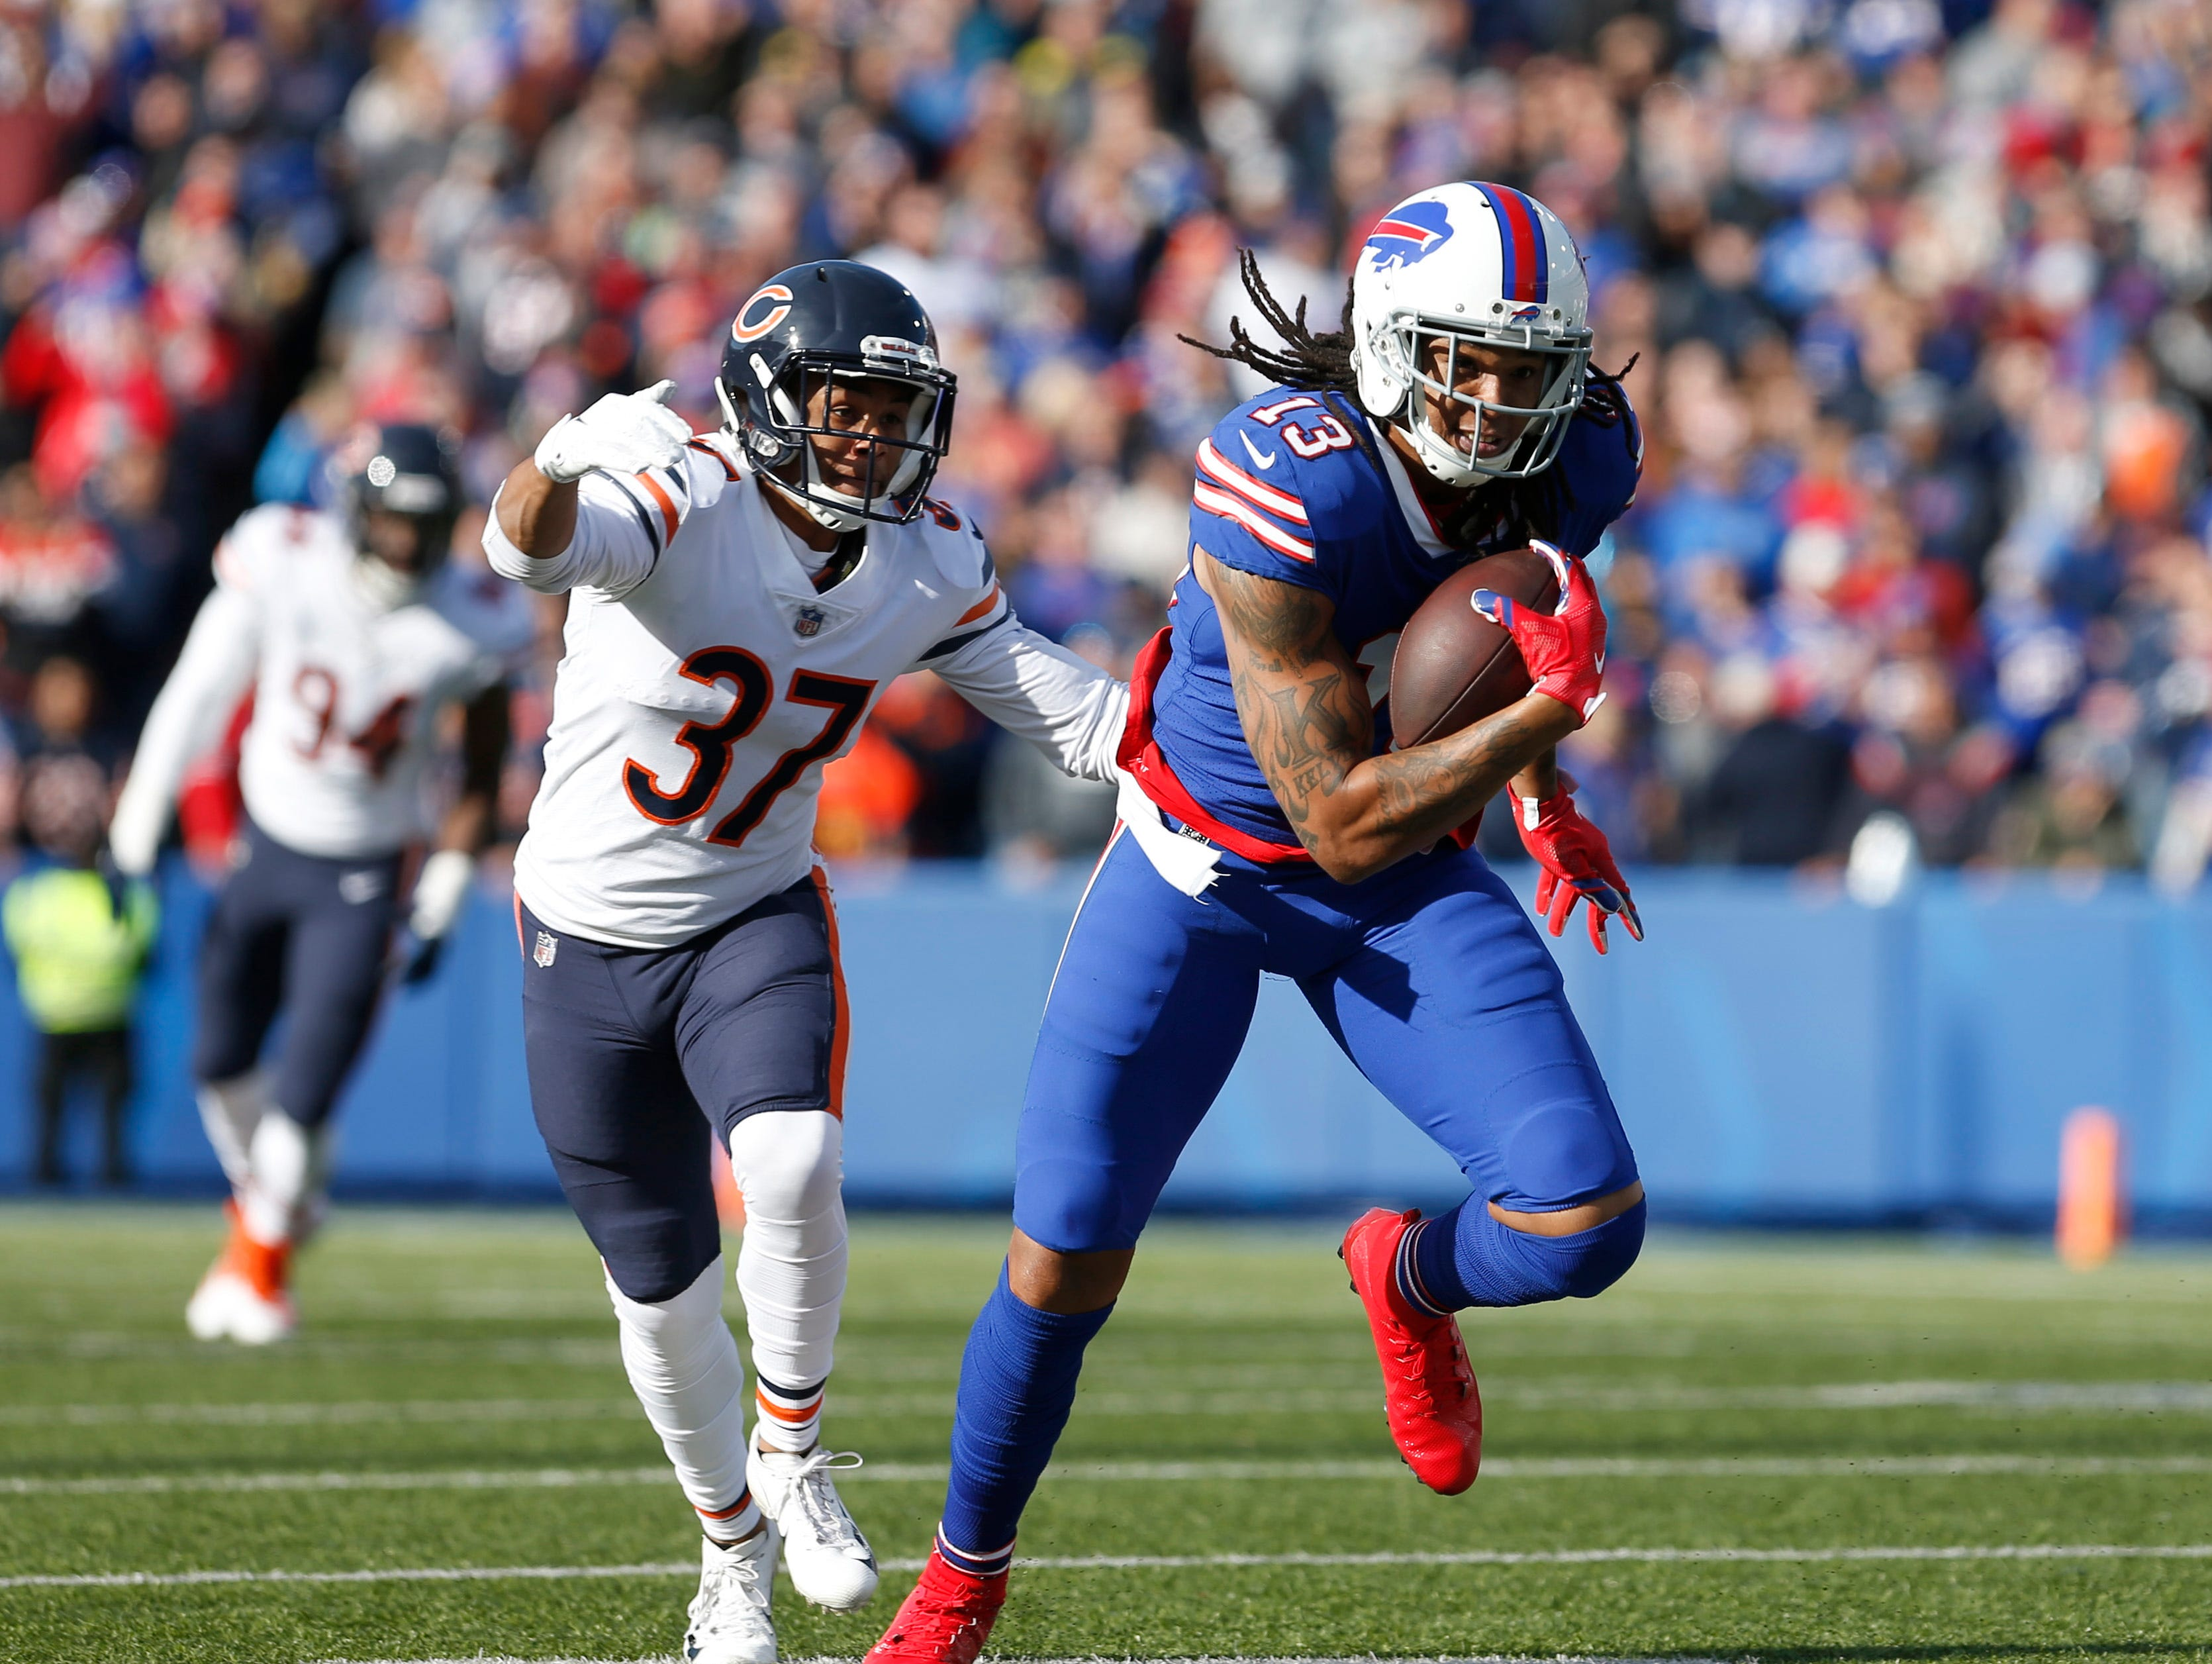 Nov 4, 2018; Orchard Park, NY, USA; Buffalo Bills wide receiver Kelvin Benjamin (13) makes a catch and runs the ball while Chicago Bears cornerback Bryce Callahan (37) looks to make a tackle during the first half at New Era Field. Mandatory Credit: Timothy T. Ludwig-USA TODAY Sports